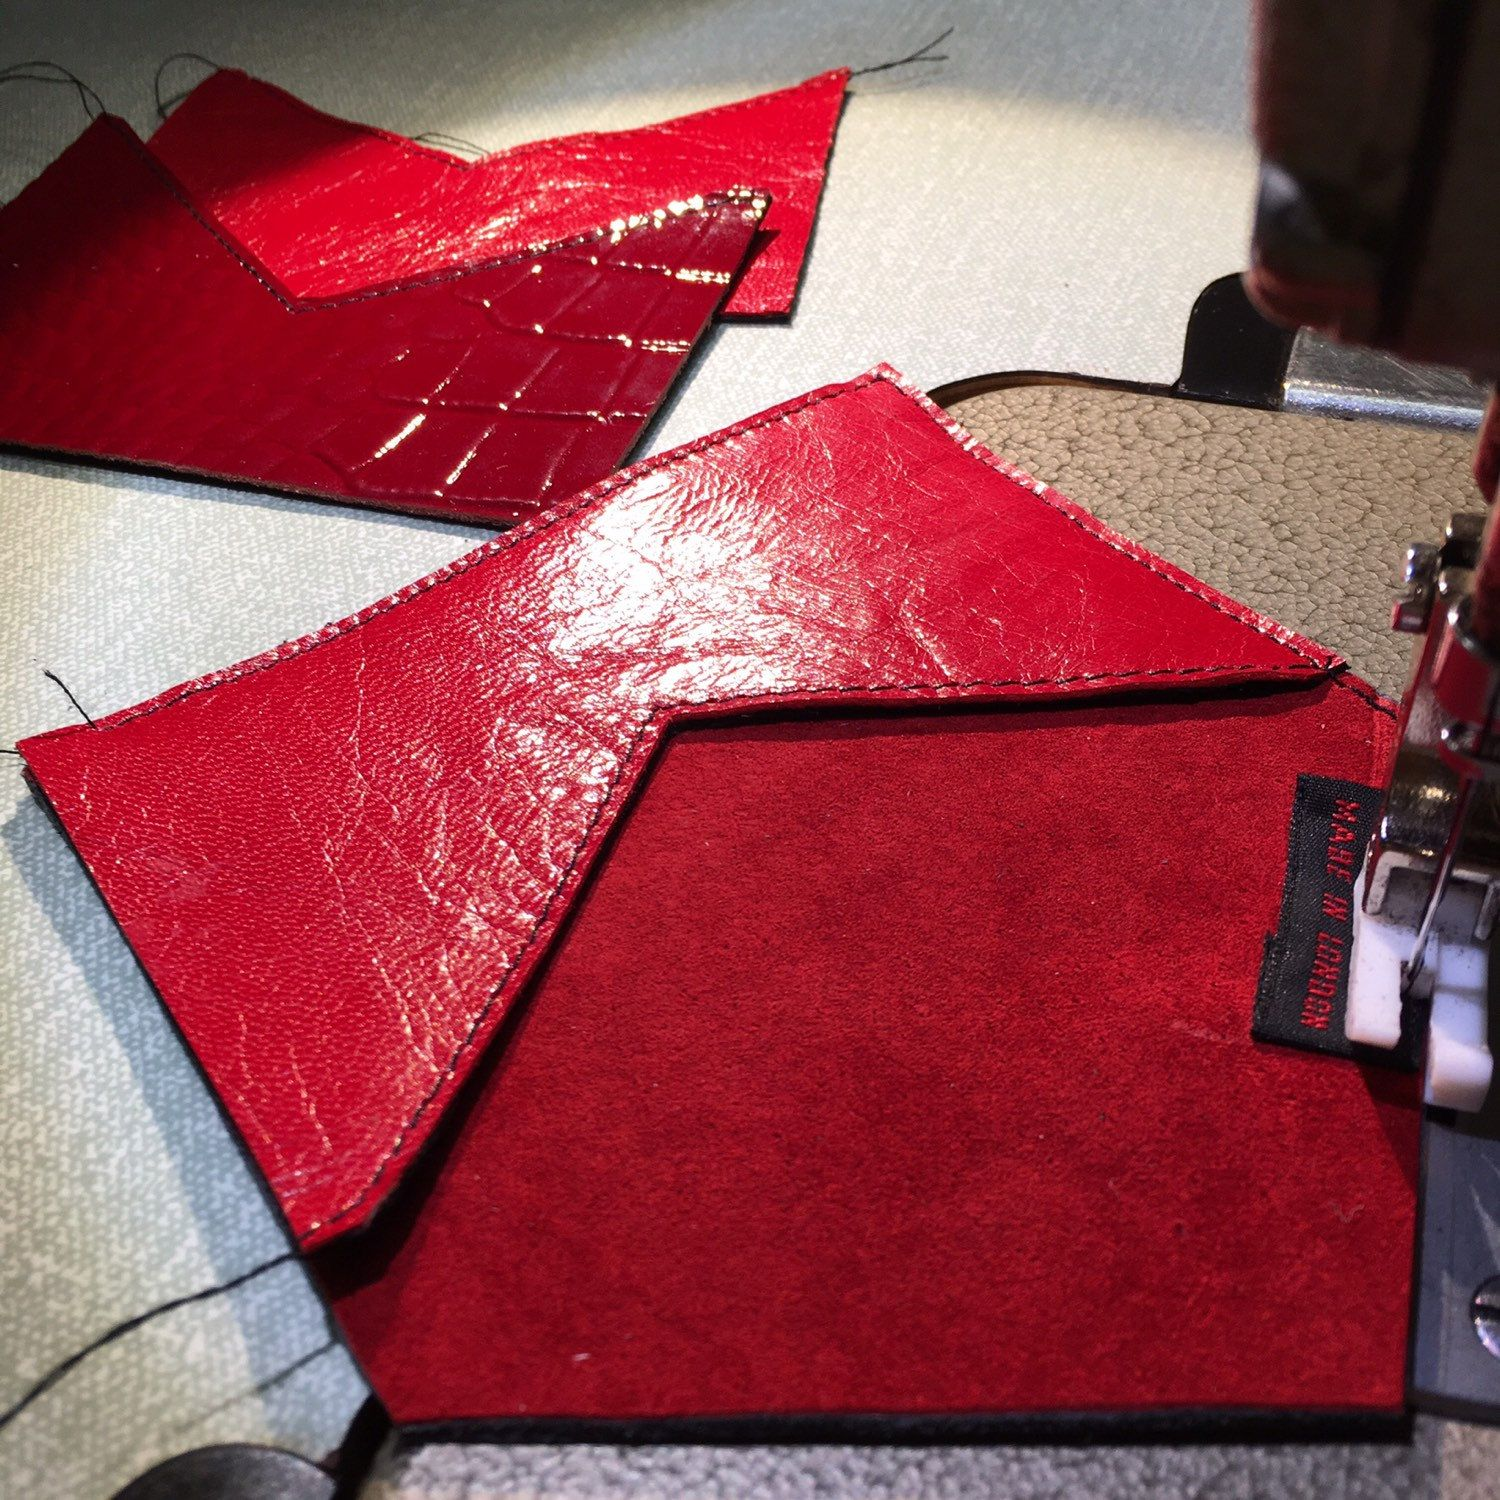 Sewing up some hot lipstick red leather 💋